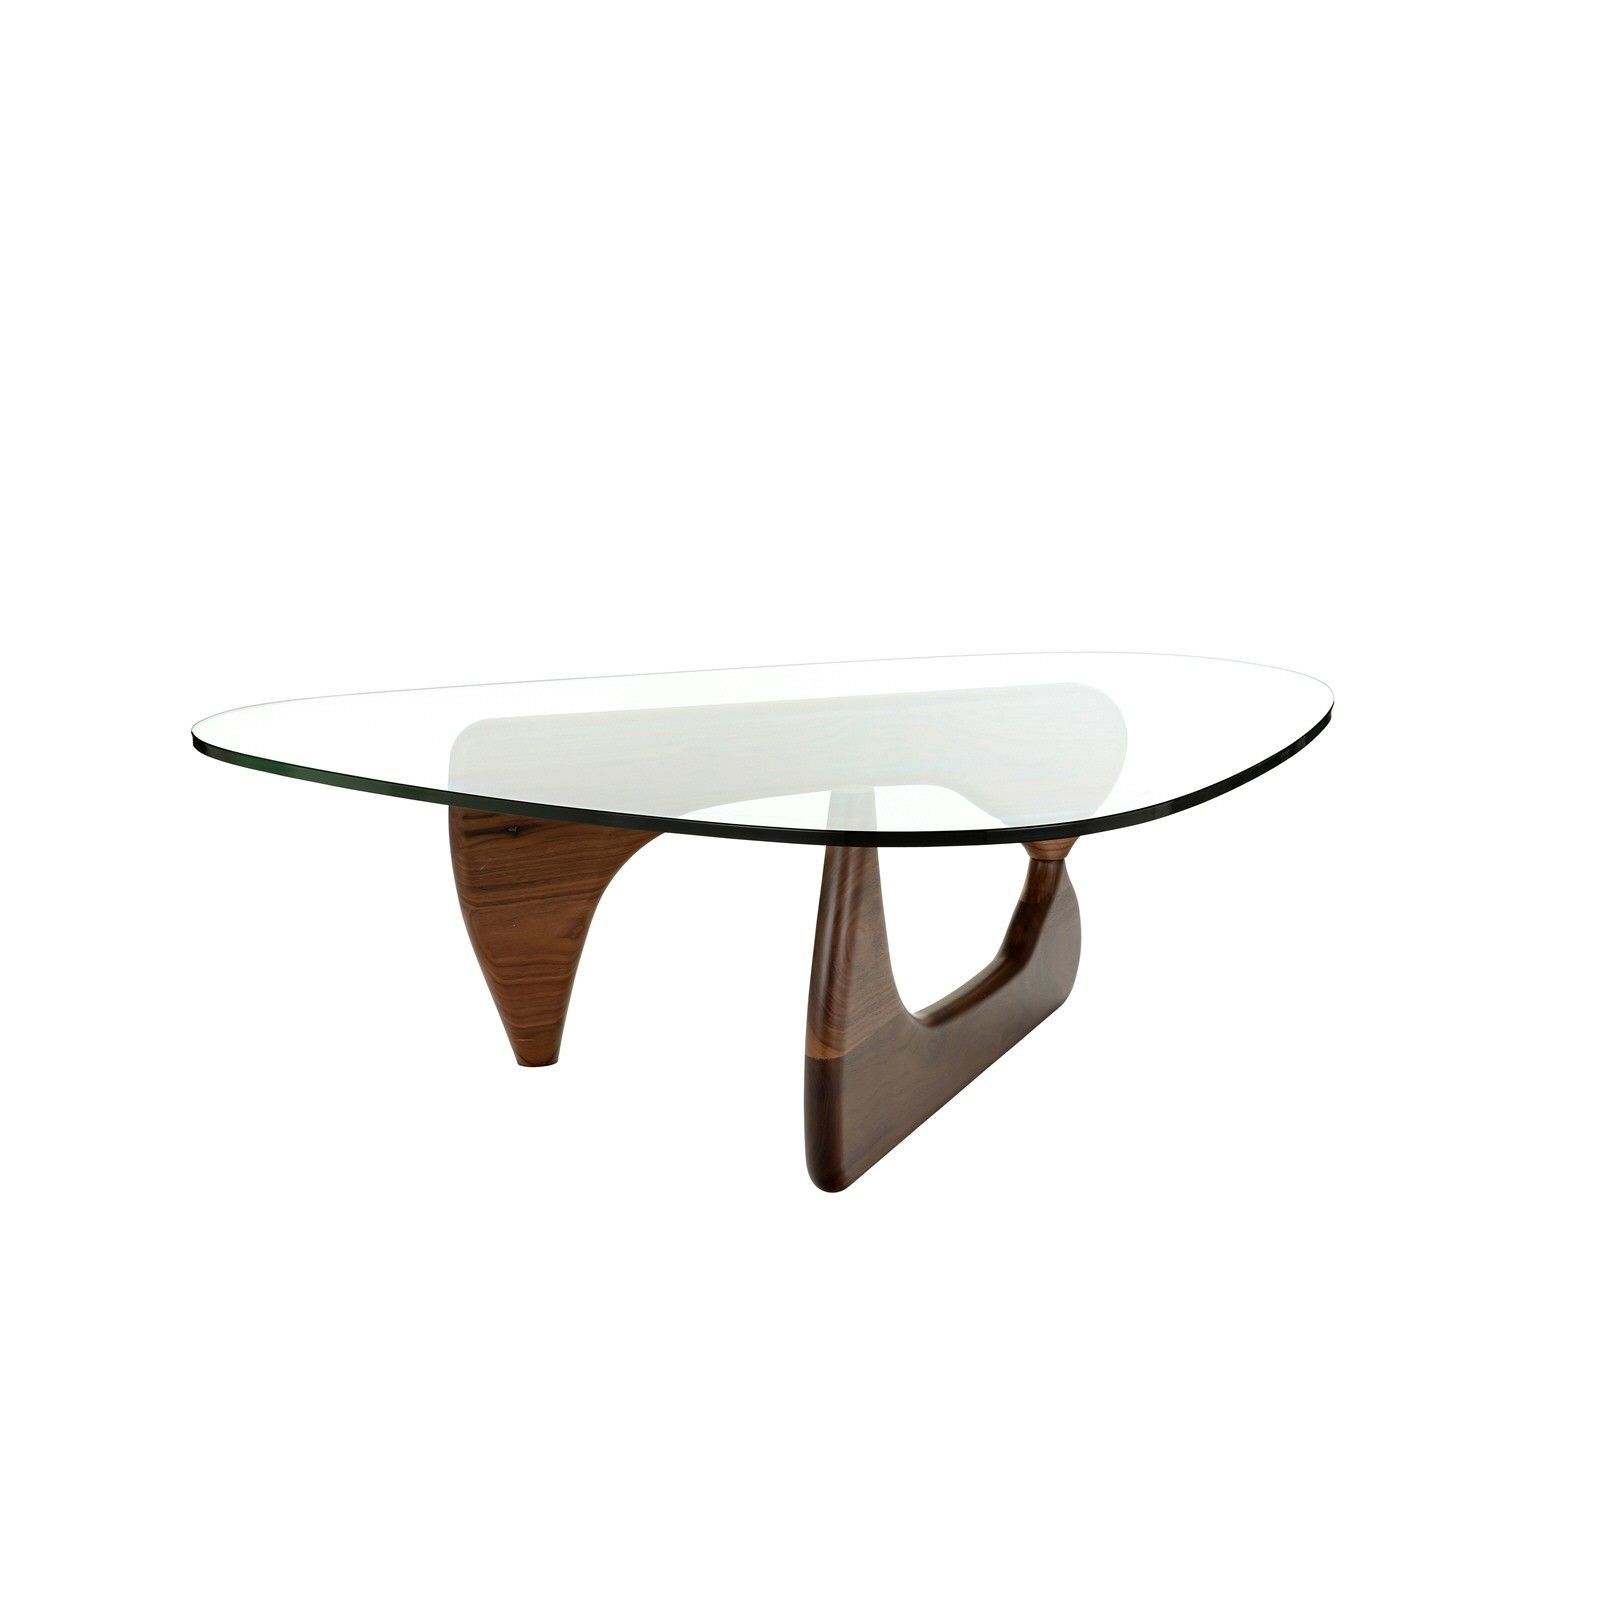 Replica Isamu Noguchi Coffee Table Walnut Coffee Tables Nick